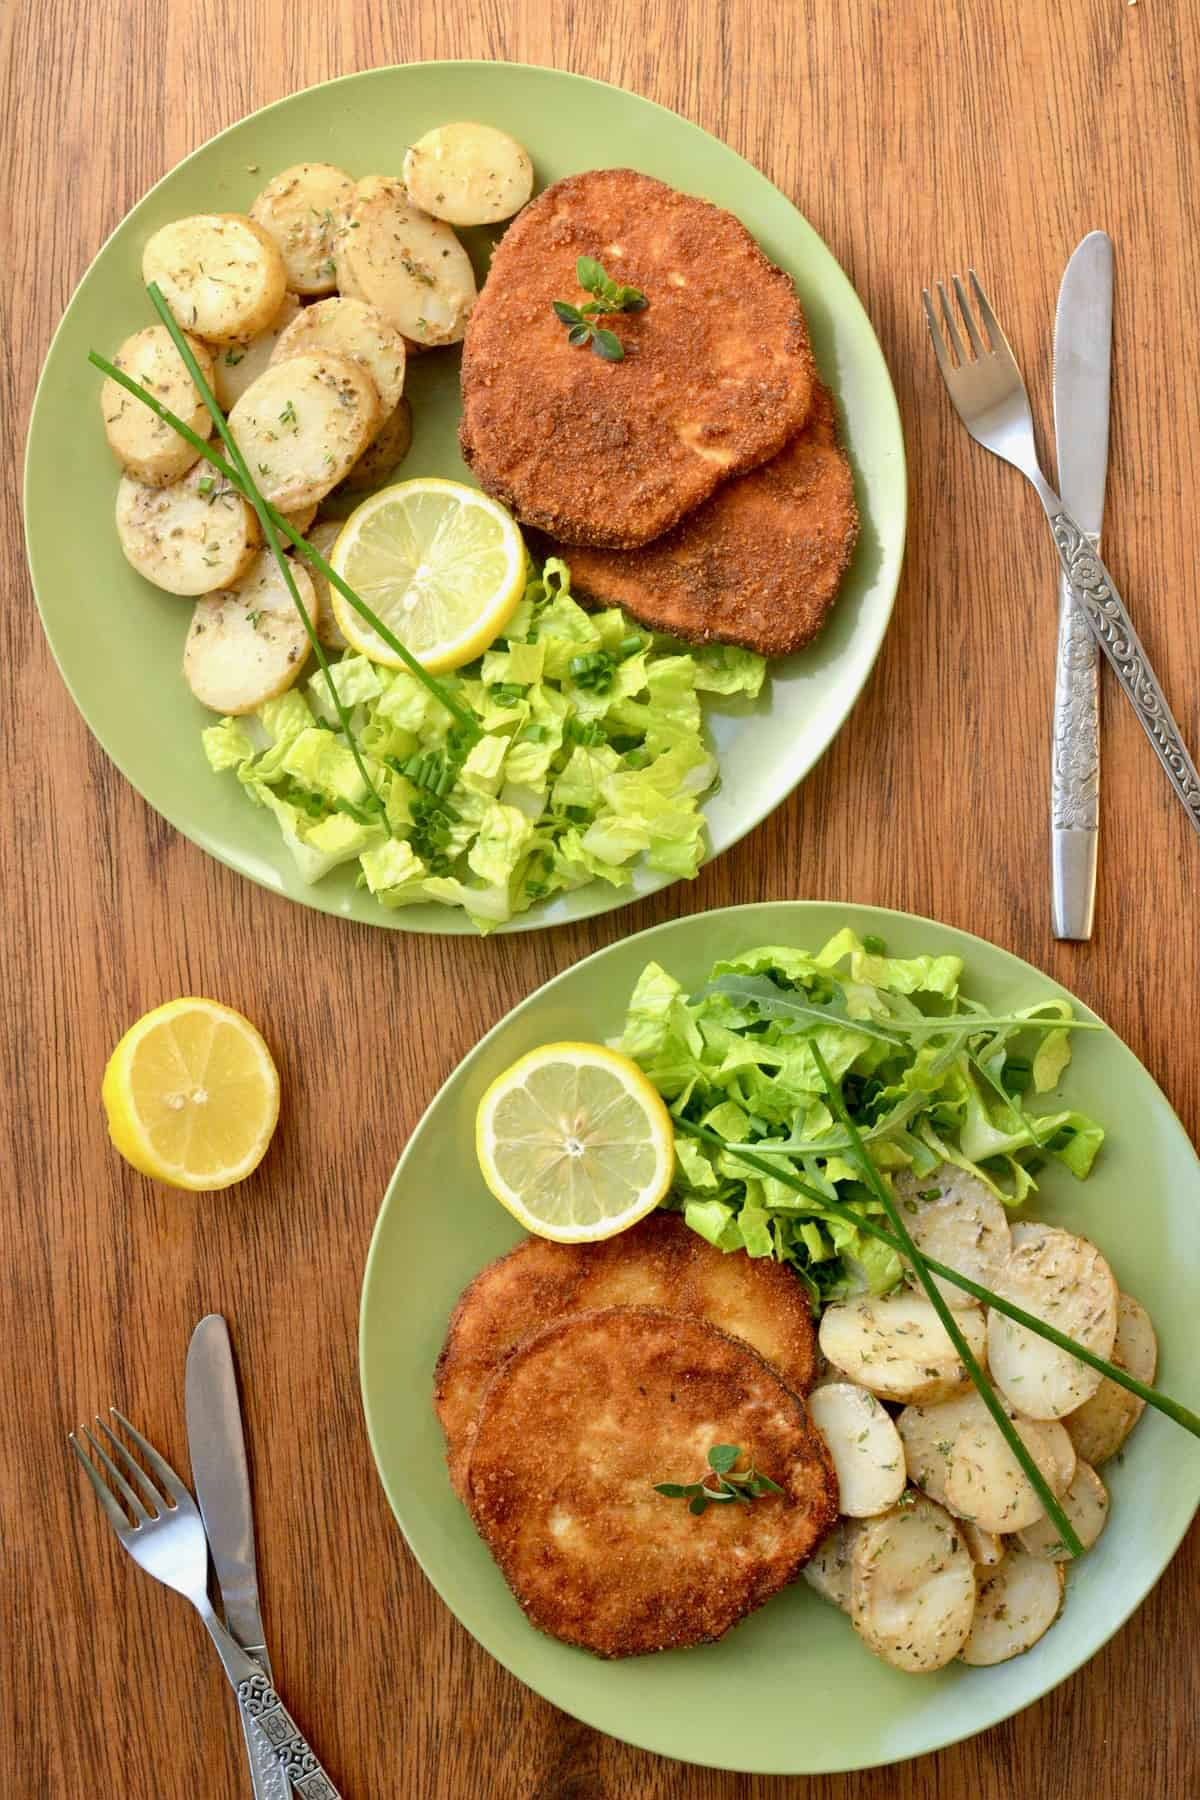 Two green plates with a serving of two fried schnitzels, herby potato salad and a green lettuce salad.